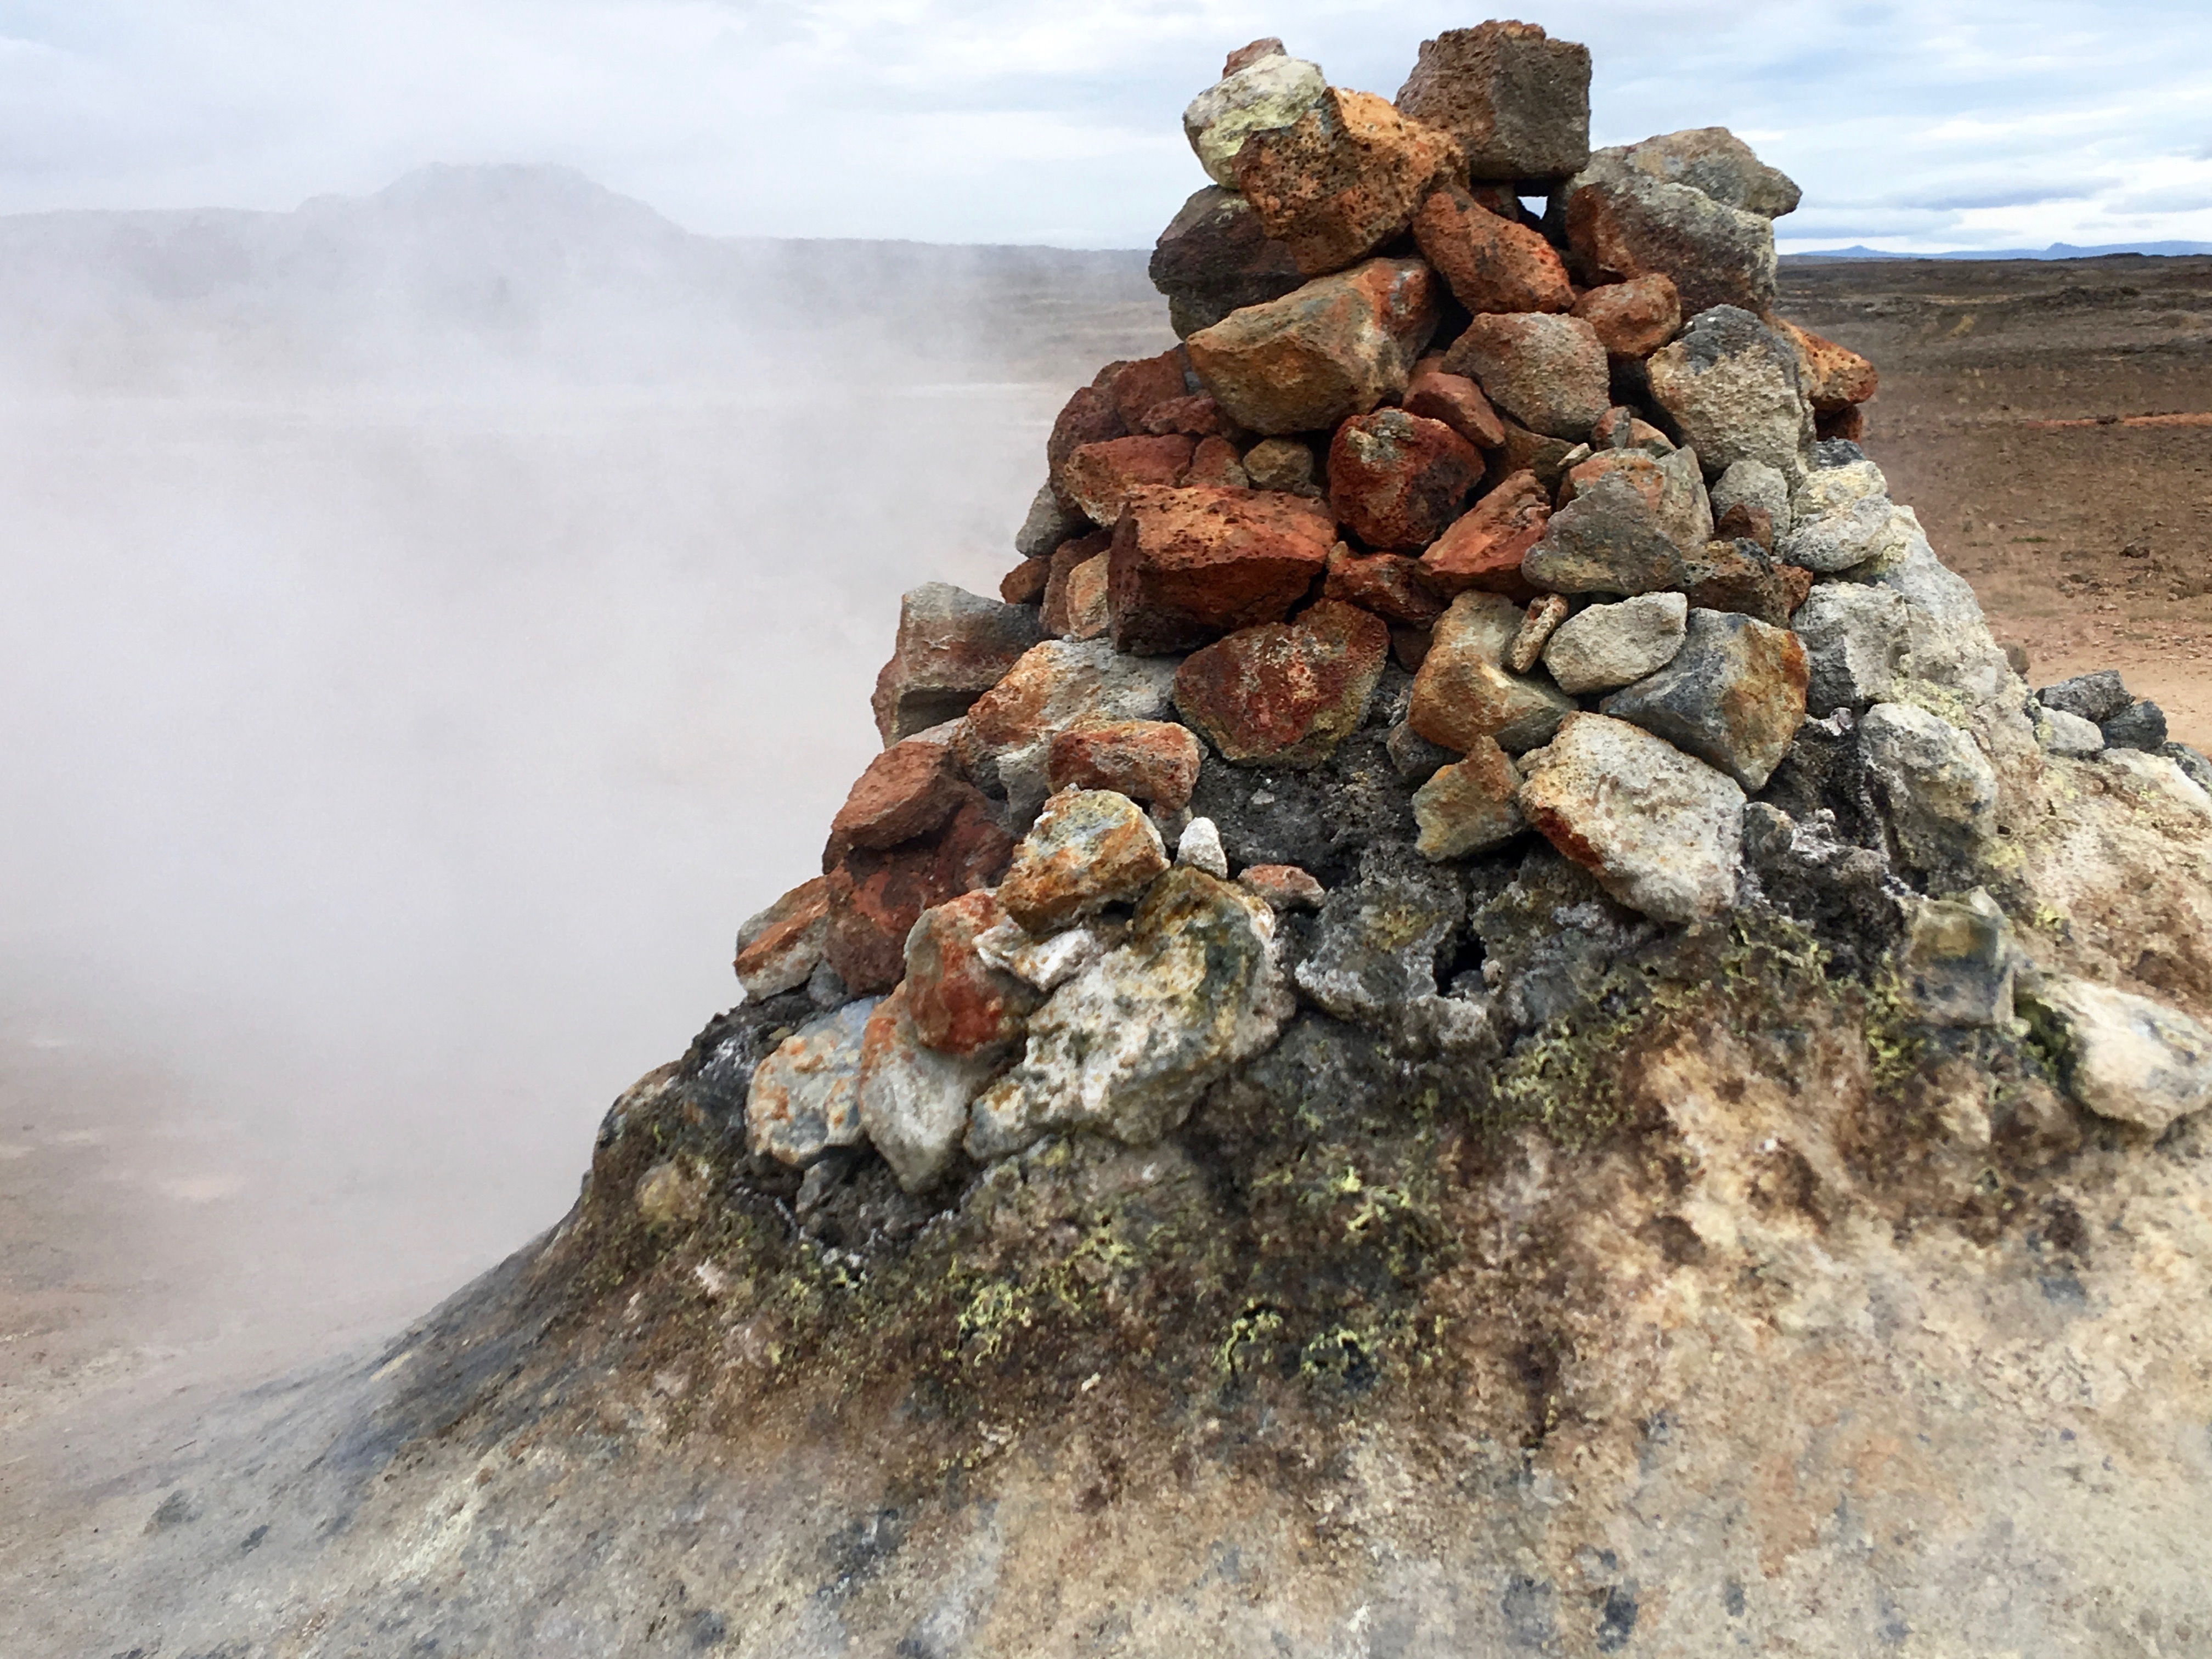 There is sulfur steam coming from this formation at a mud pud. Photo: Tonya Fitzpatrick